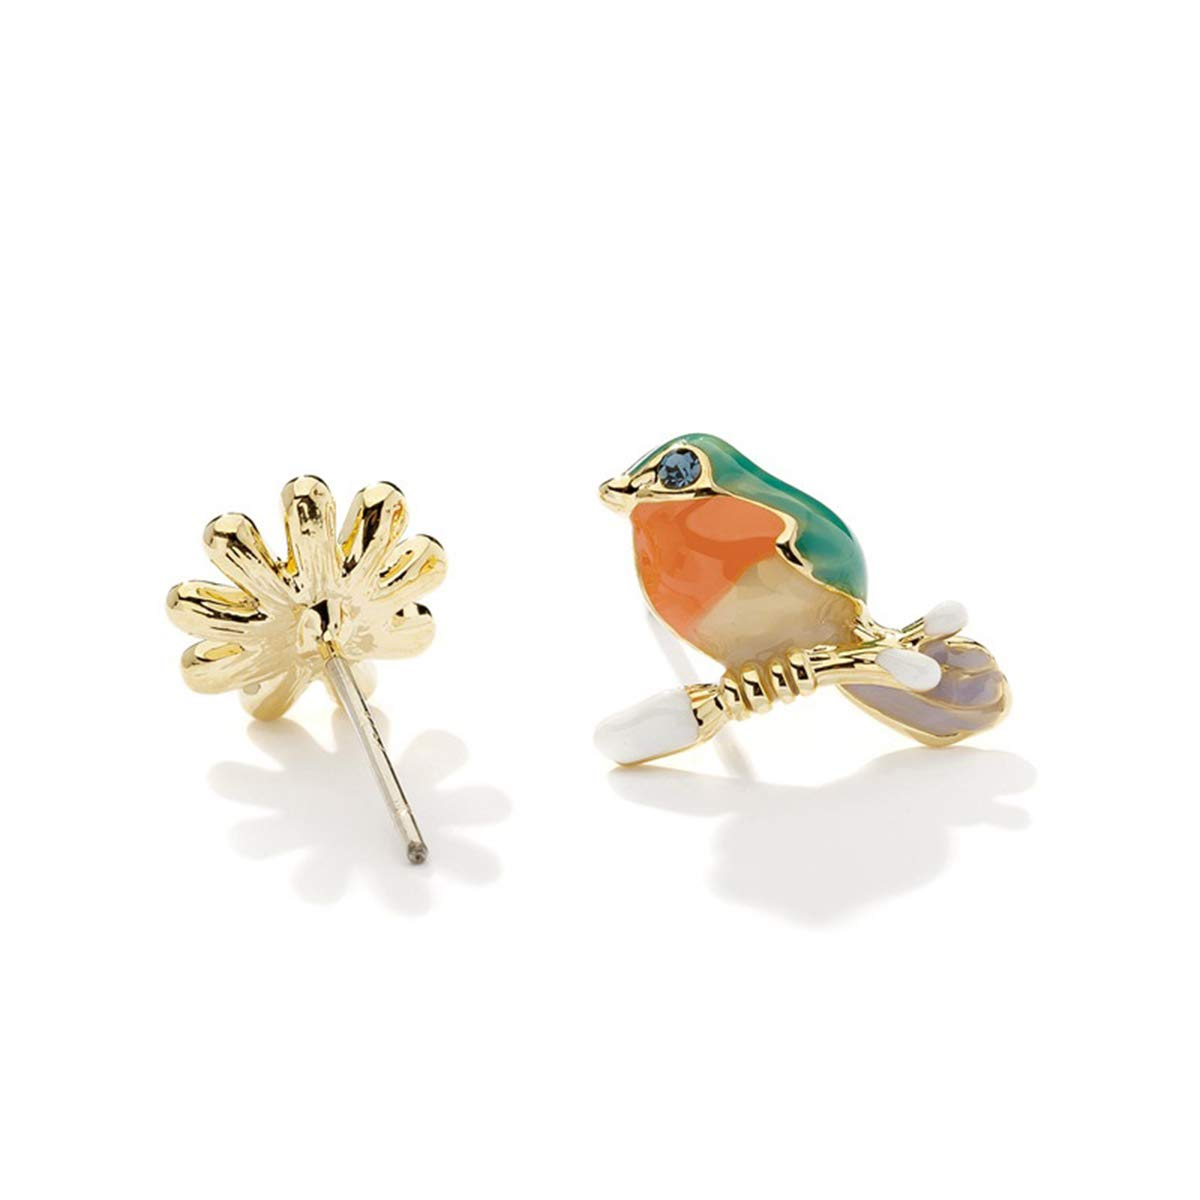 Multicolor Hugdong Colorful Glaze Crystal Accent Bird Flower Stud Earrings with Jewelry Box,Bird Earrings for Women